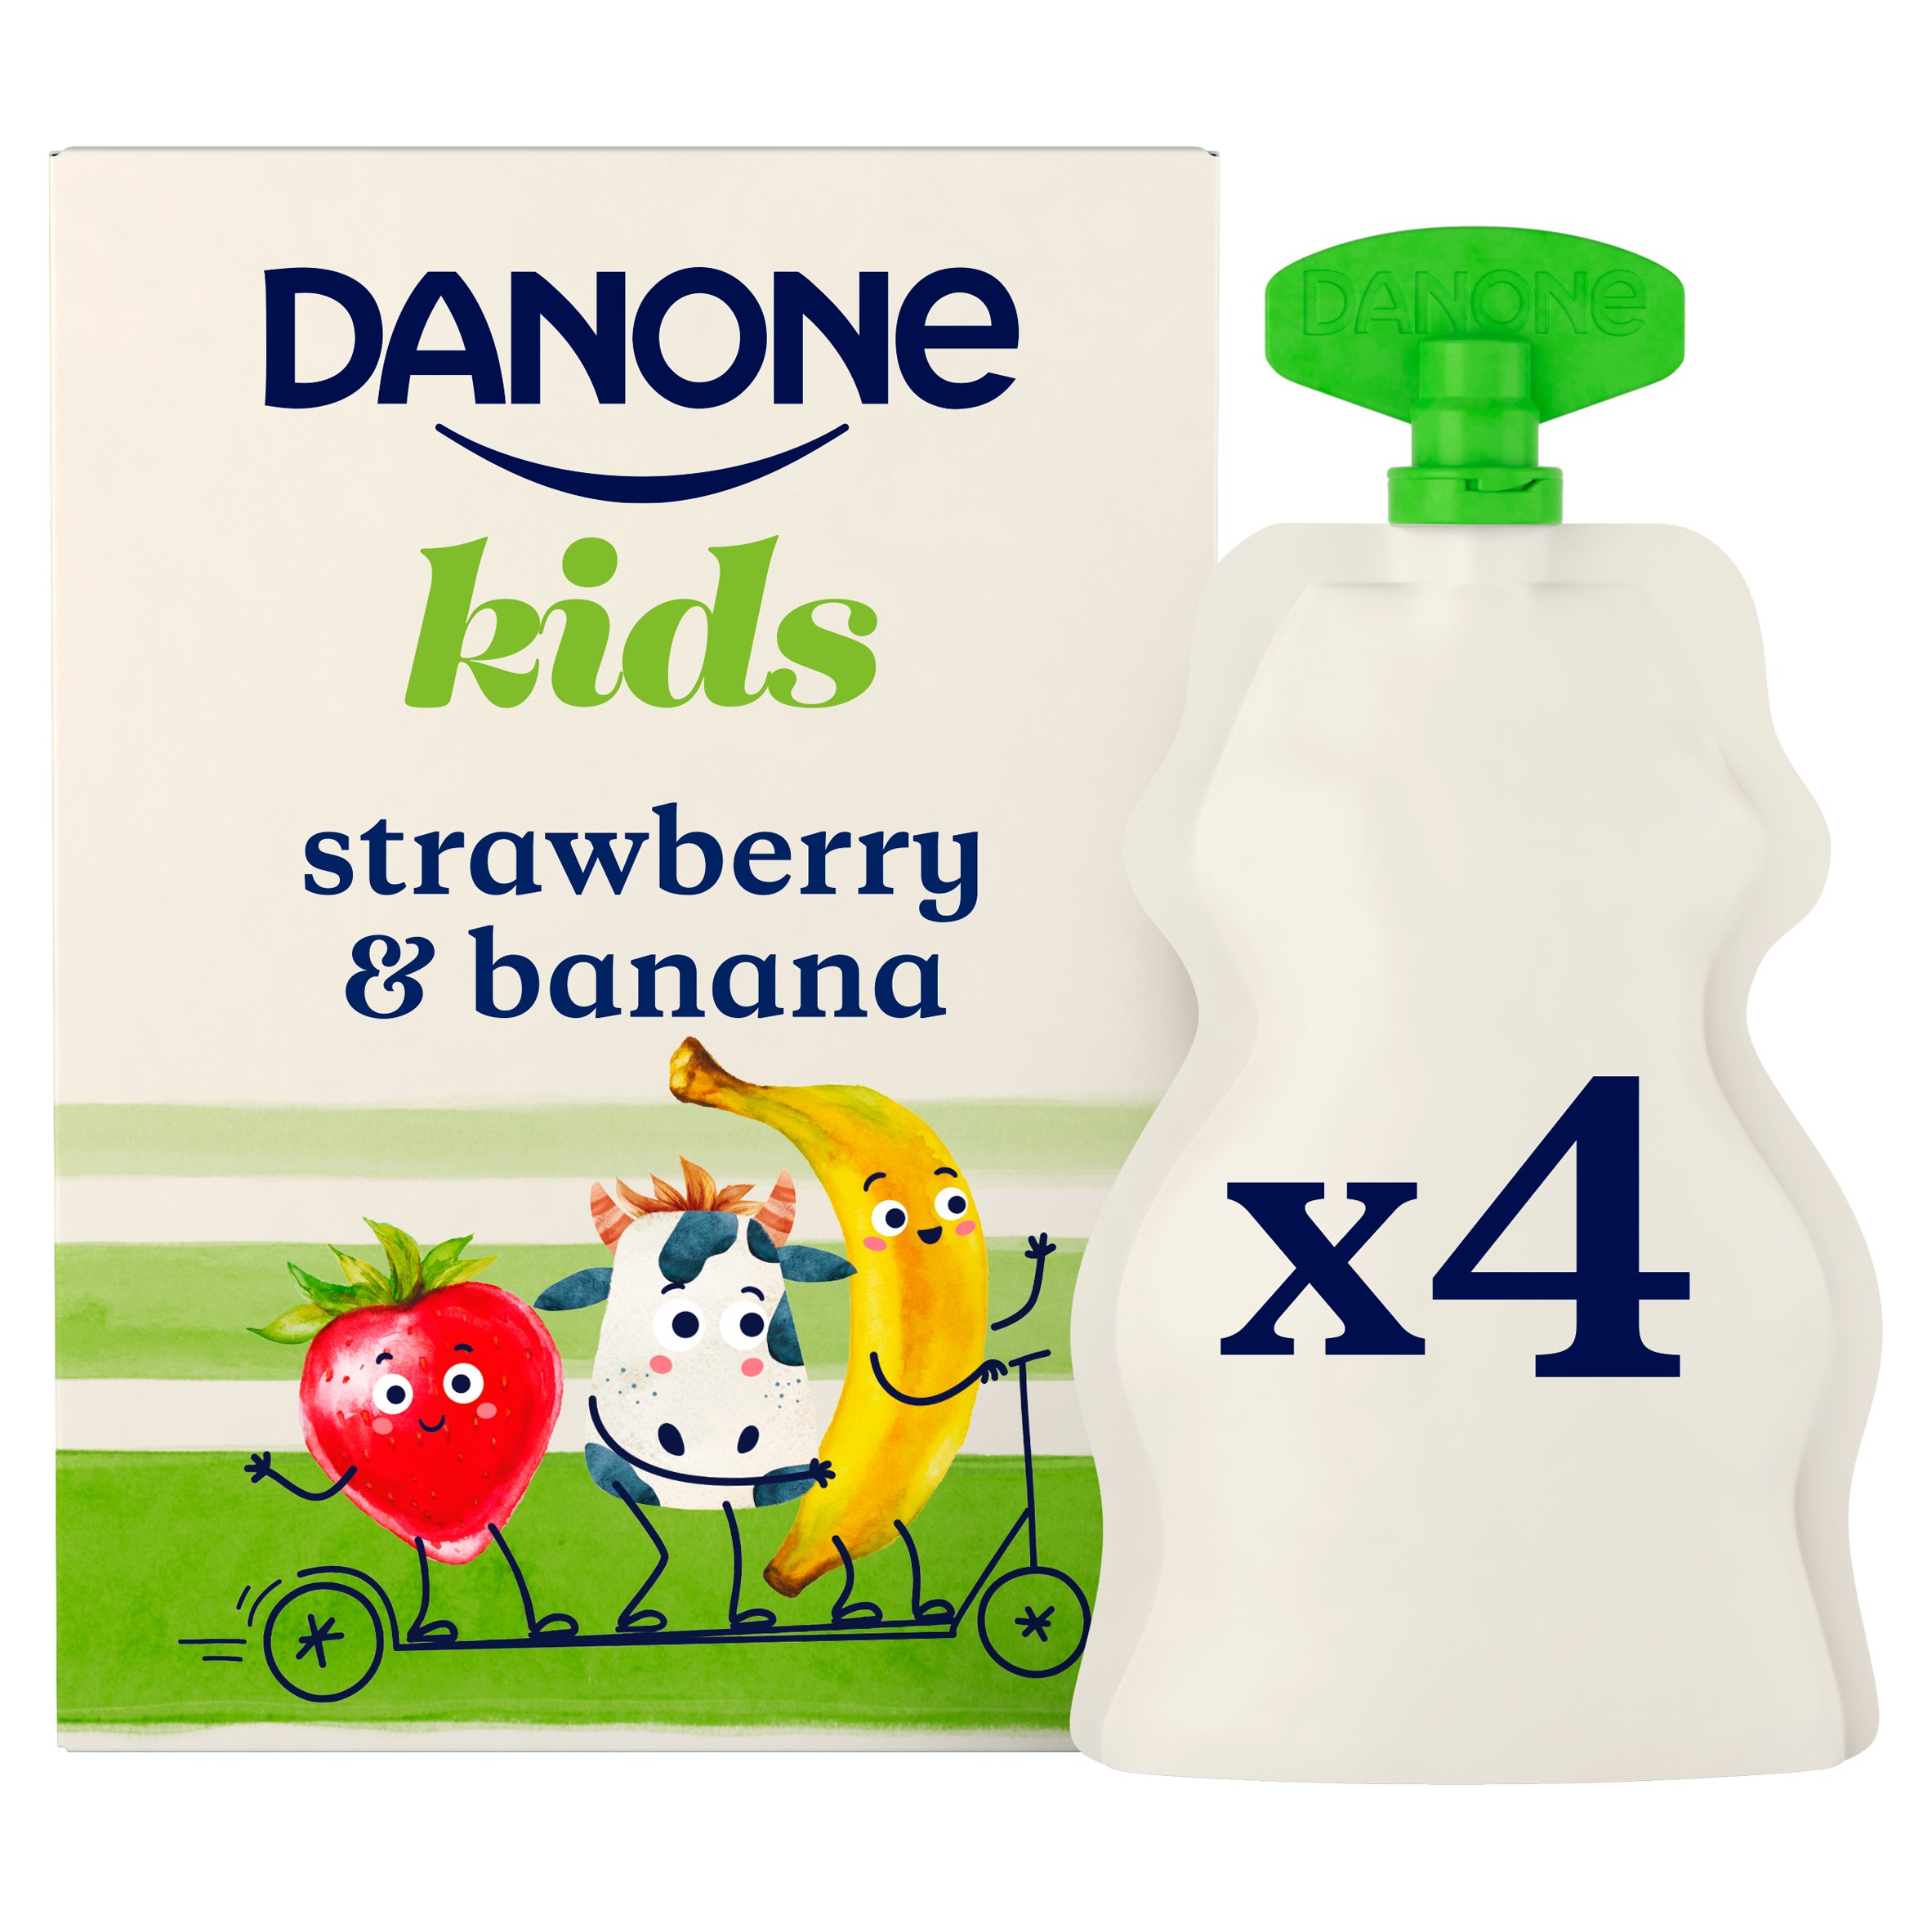 Danone Kids Organic Strawberry & Banana Yogurt 4 X 70G